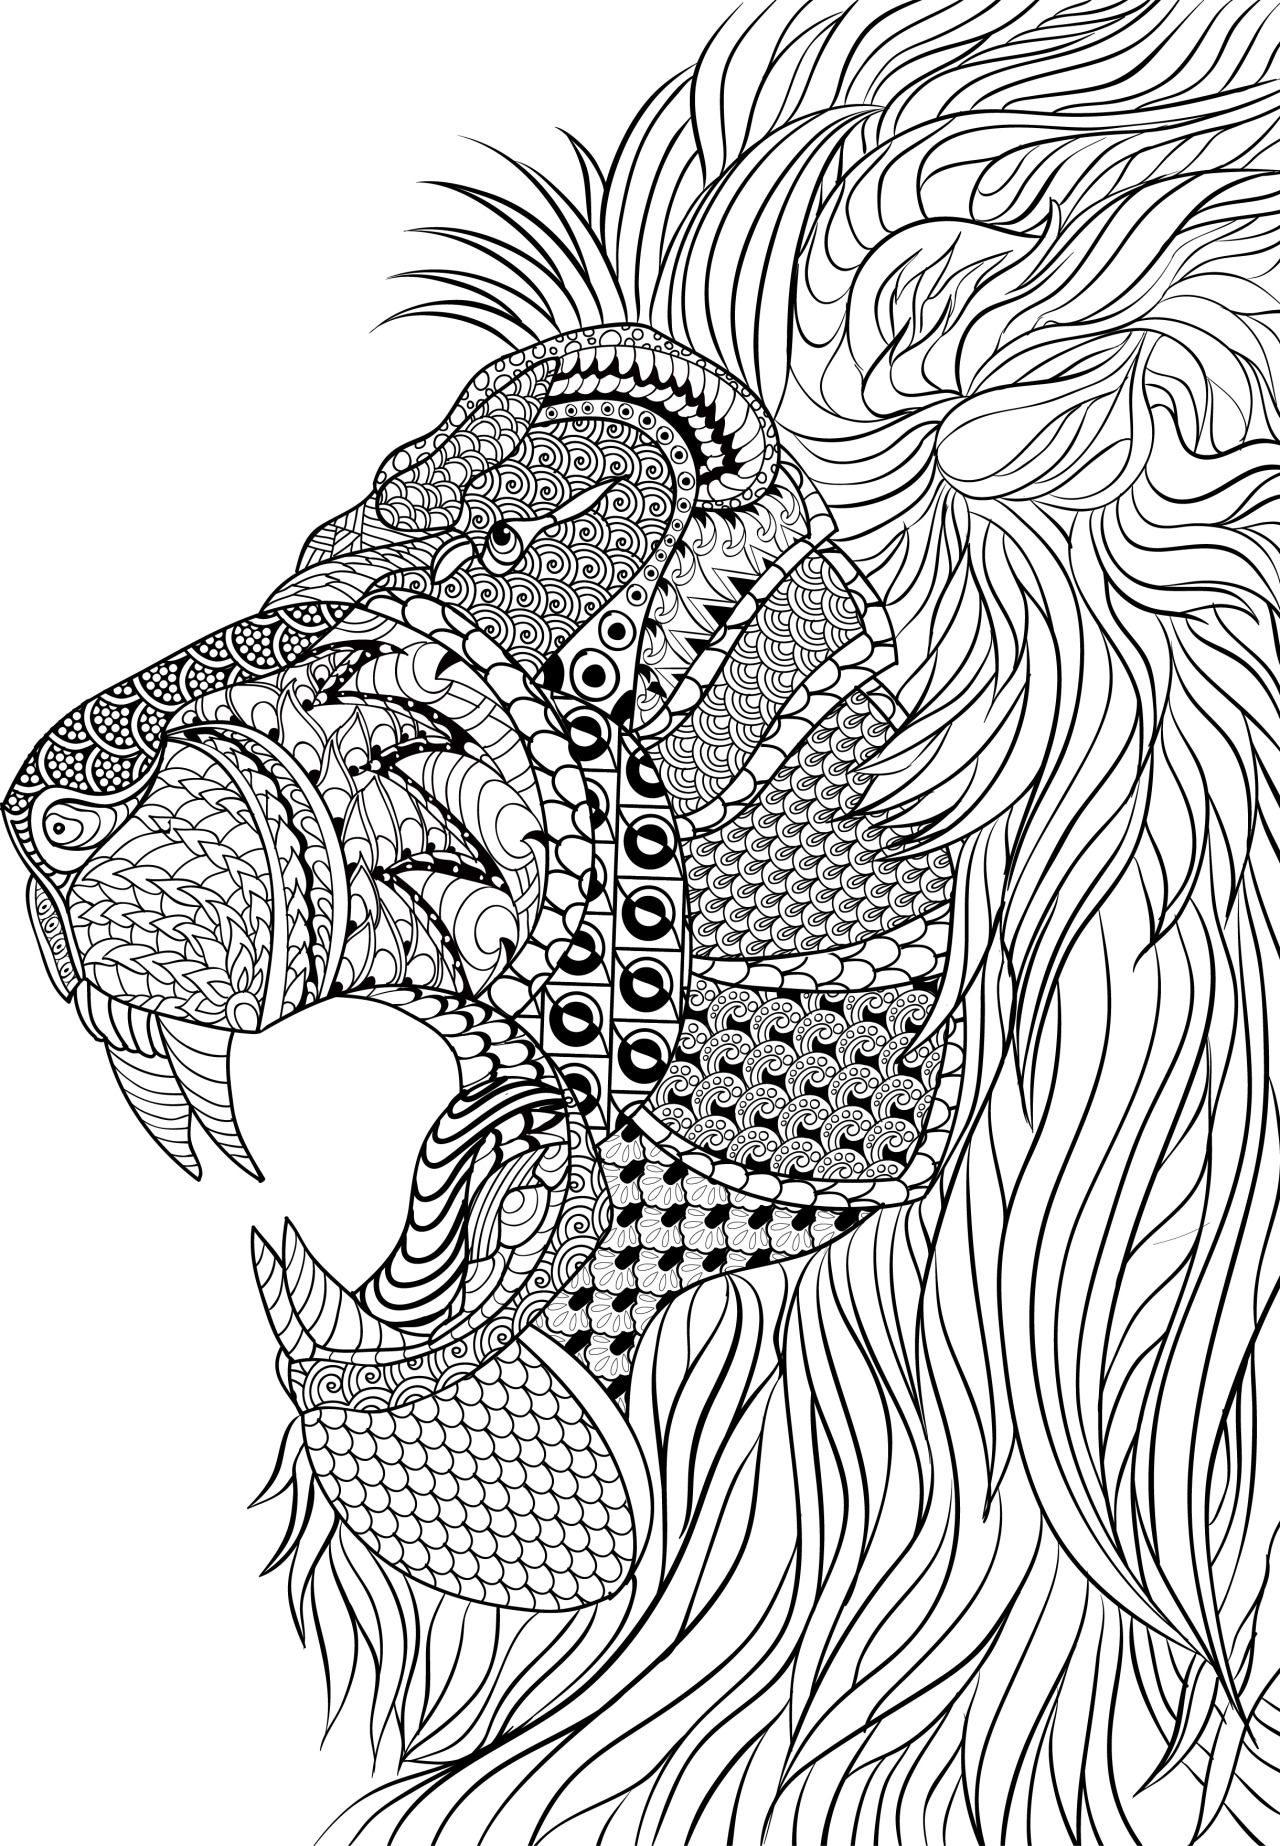 this image comes from our very own book titled coloring book